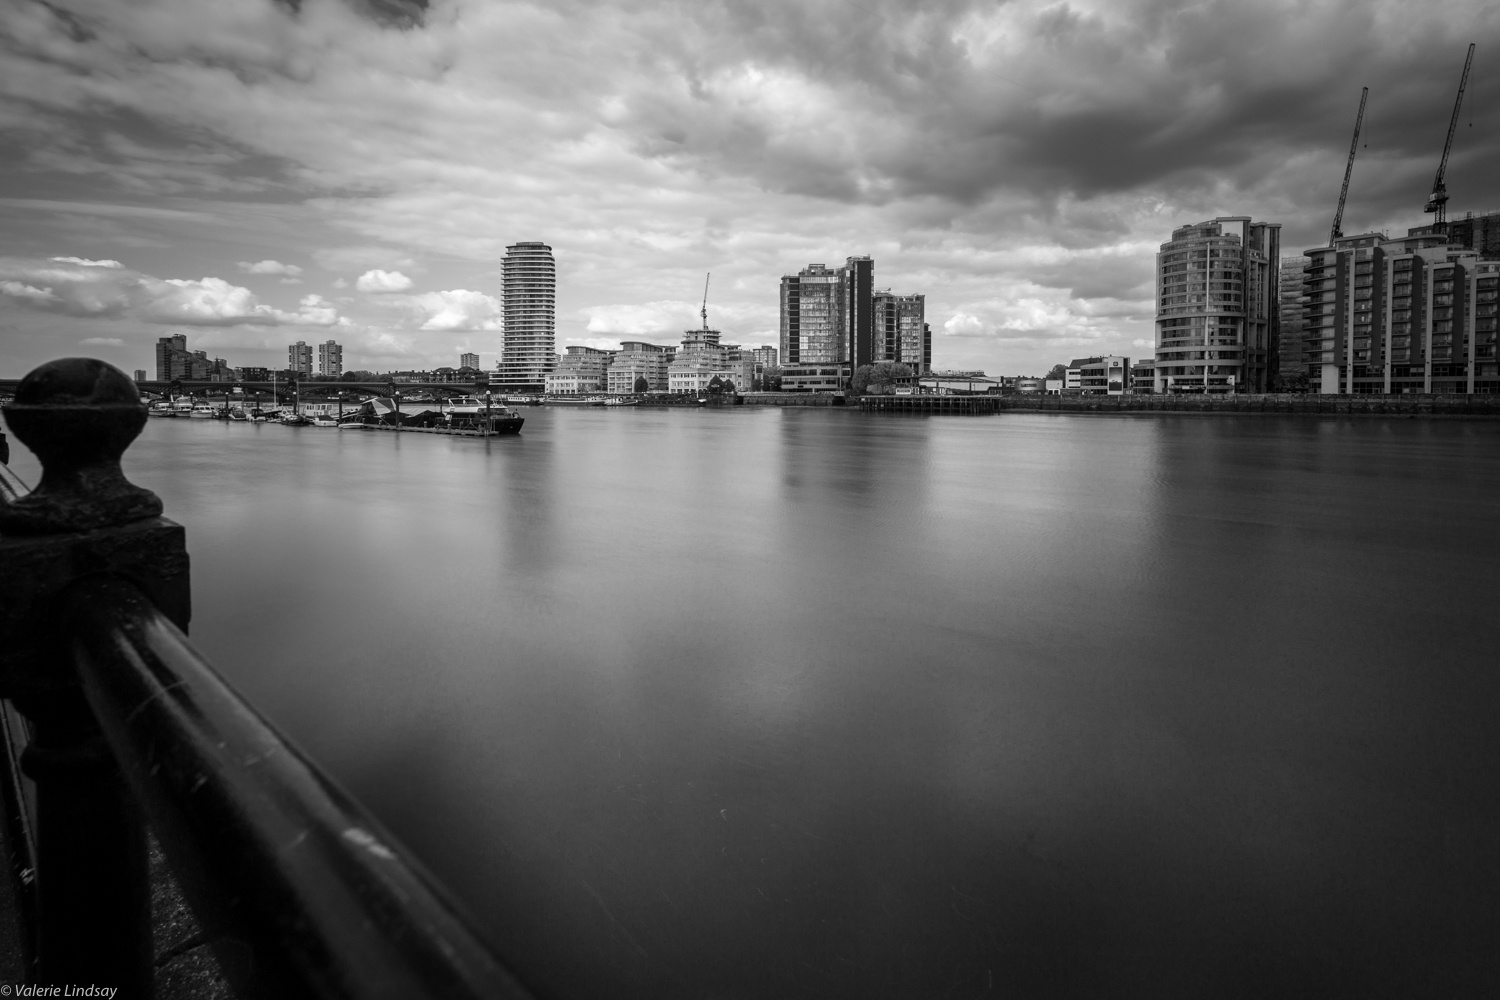 The Thames on a stormy day